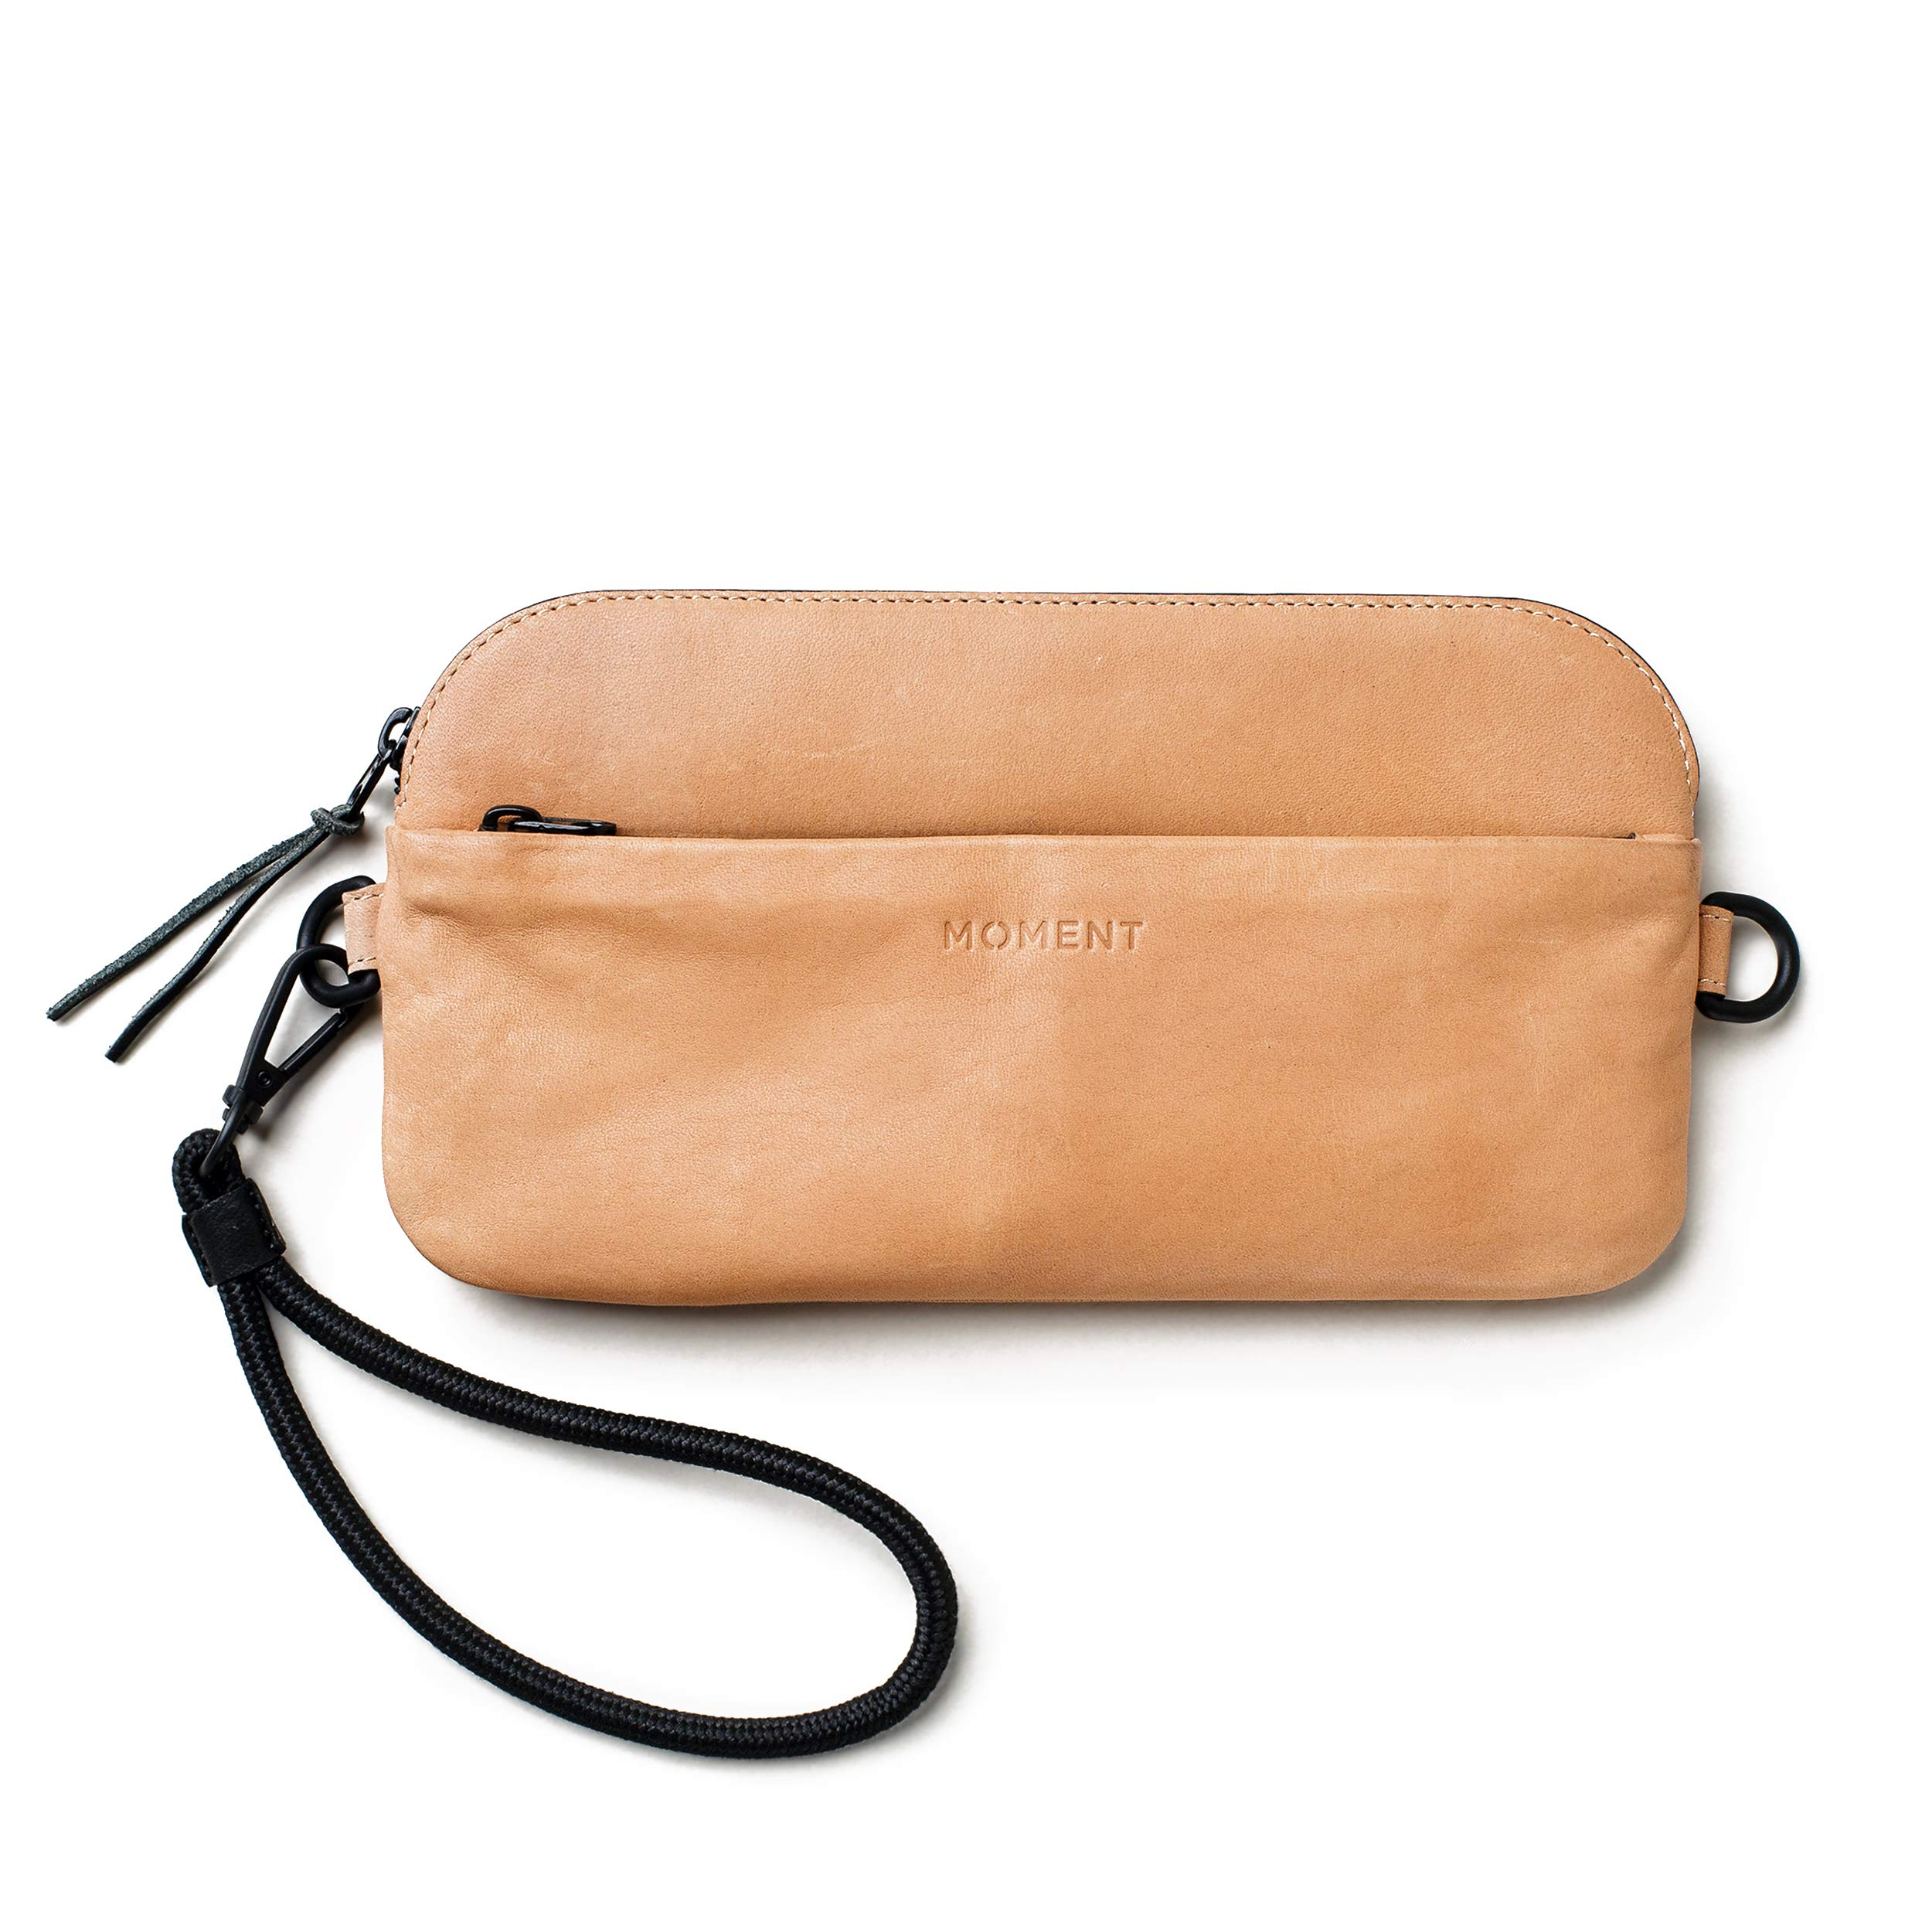 Moment - Natural American Leather Wristlet - Carry your iPhone, Wallet, and Lenses.